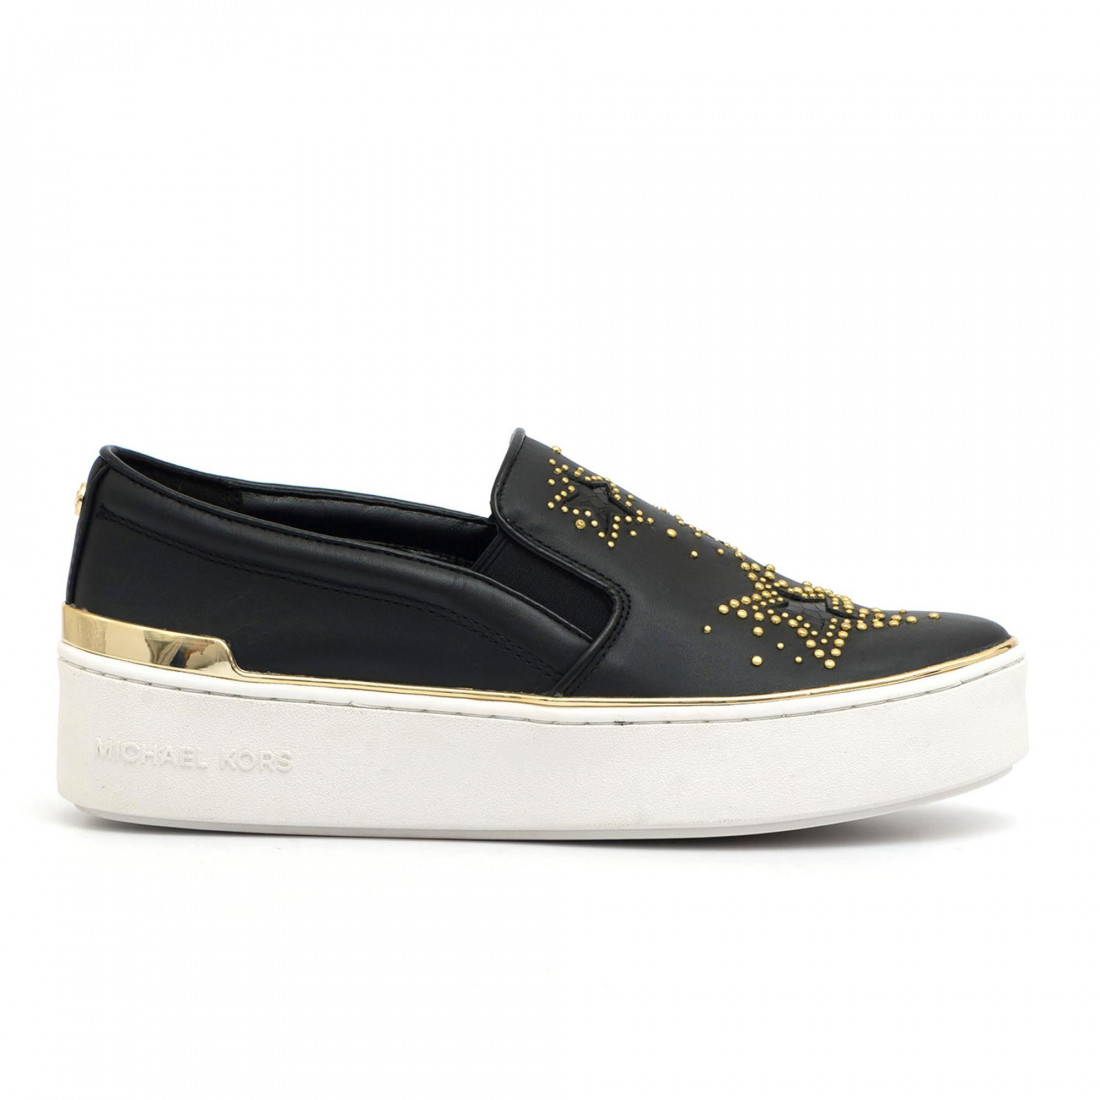 slip on donna michael kors 43r8tyfp1l001 2697